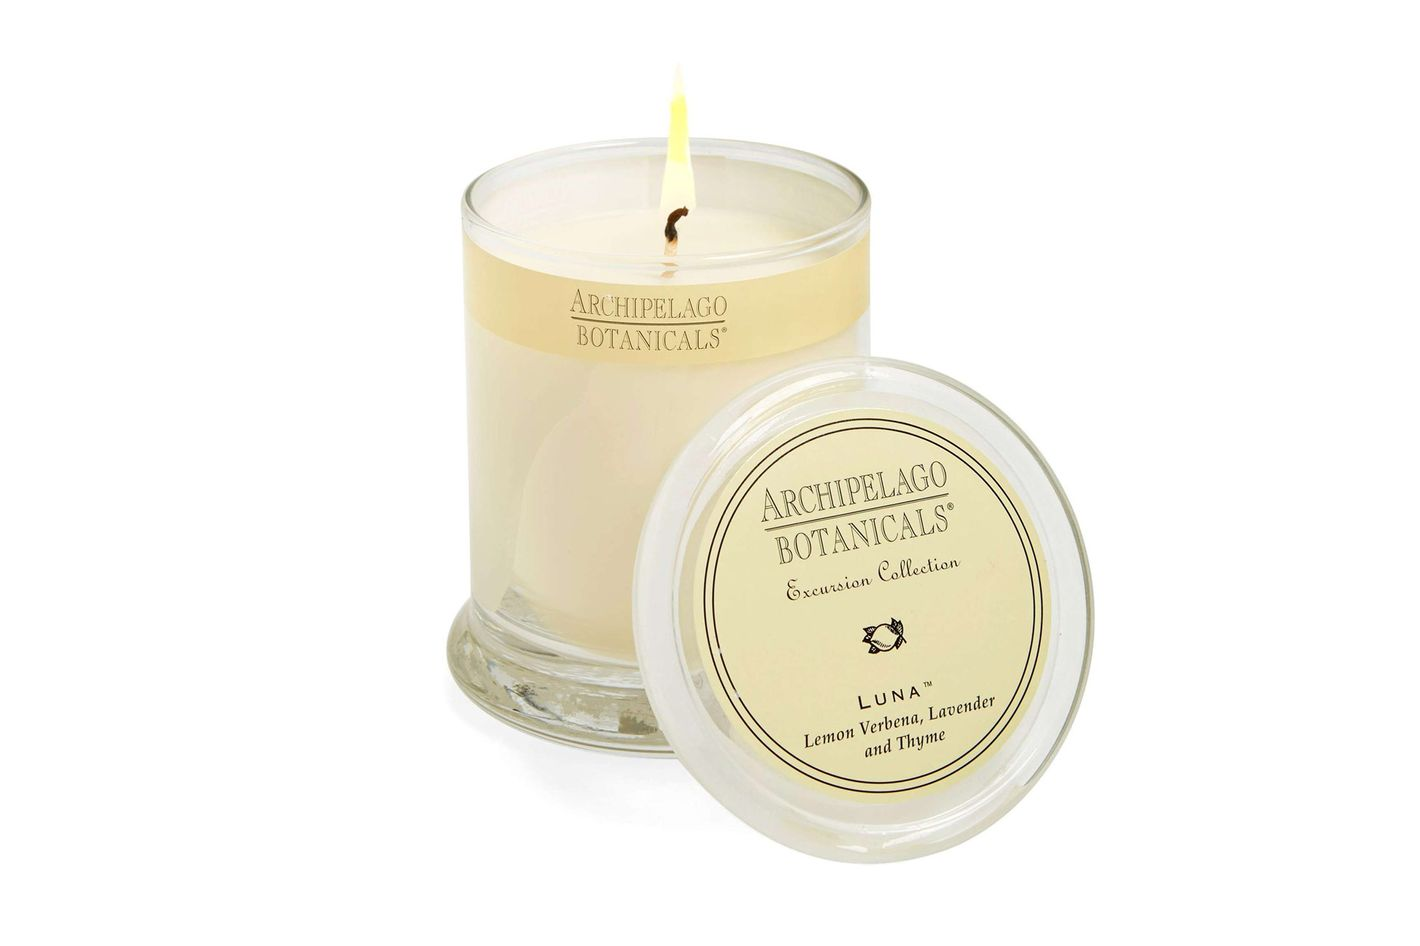 Archipelago Botancials Excursion Glass Jar Candle